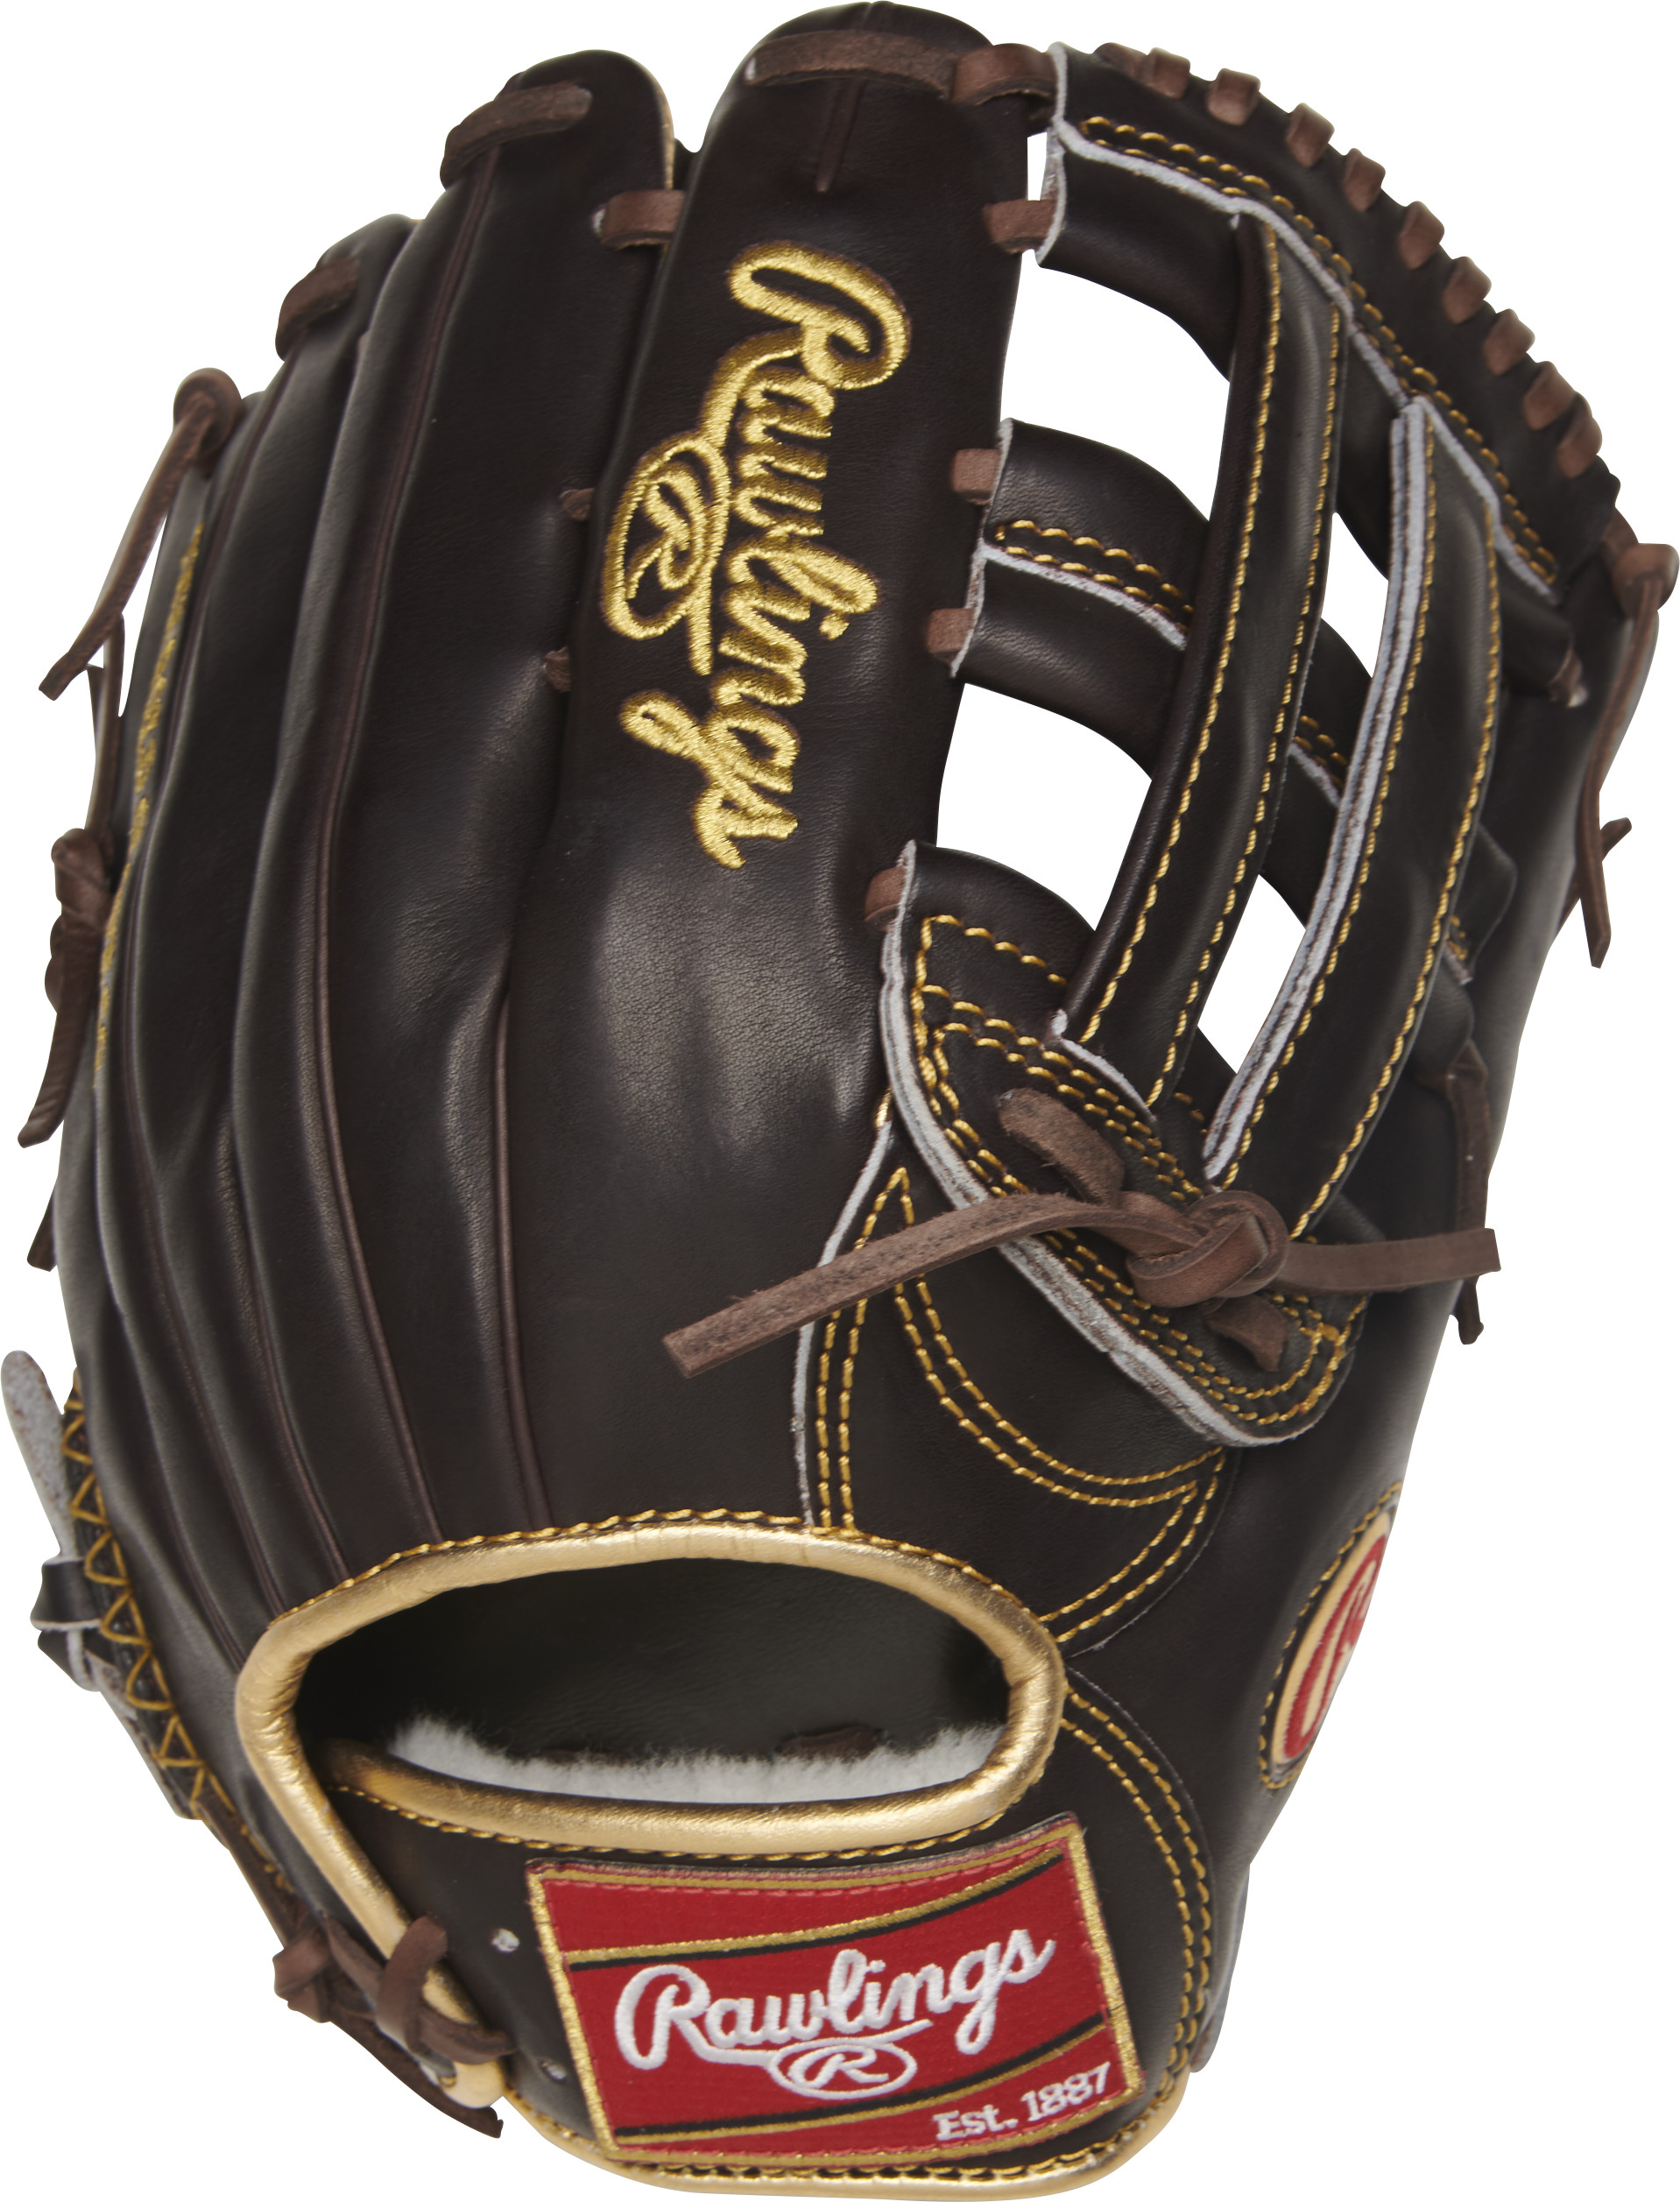 http://www.bestbatdeals.com/images/gloves/rawlings/RGG3039-6MO-2.jpg